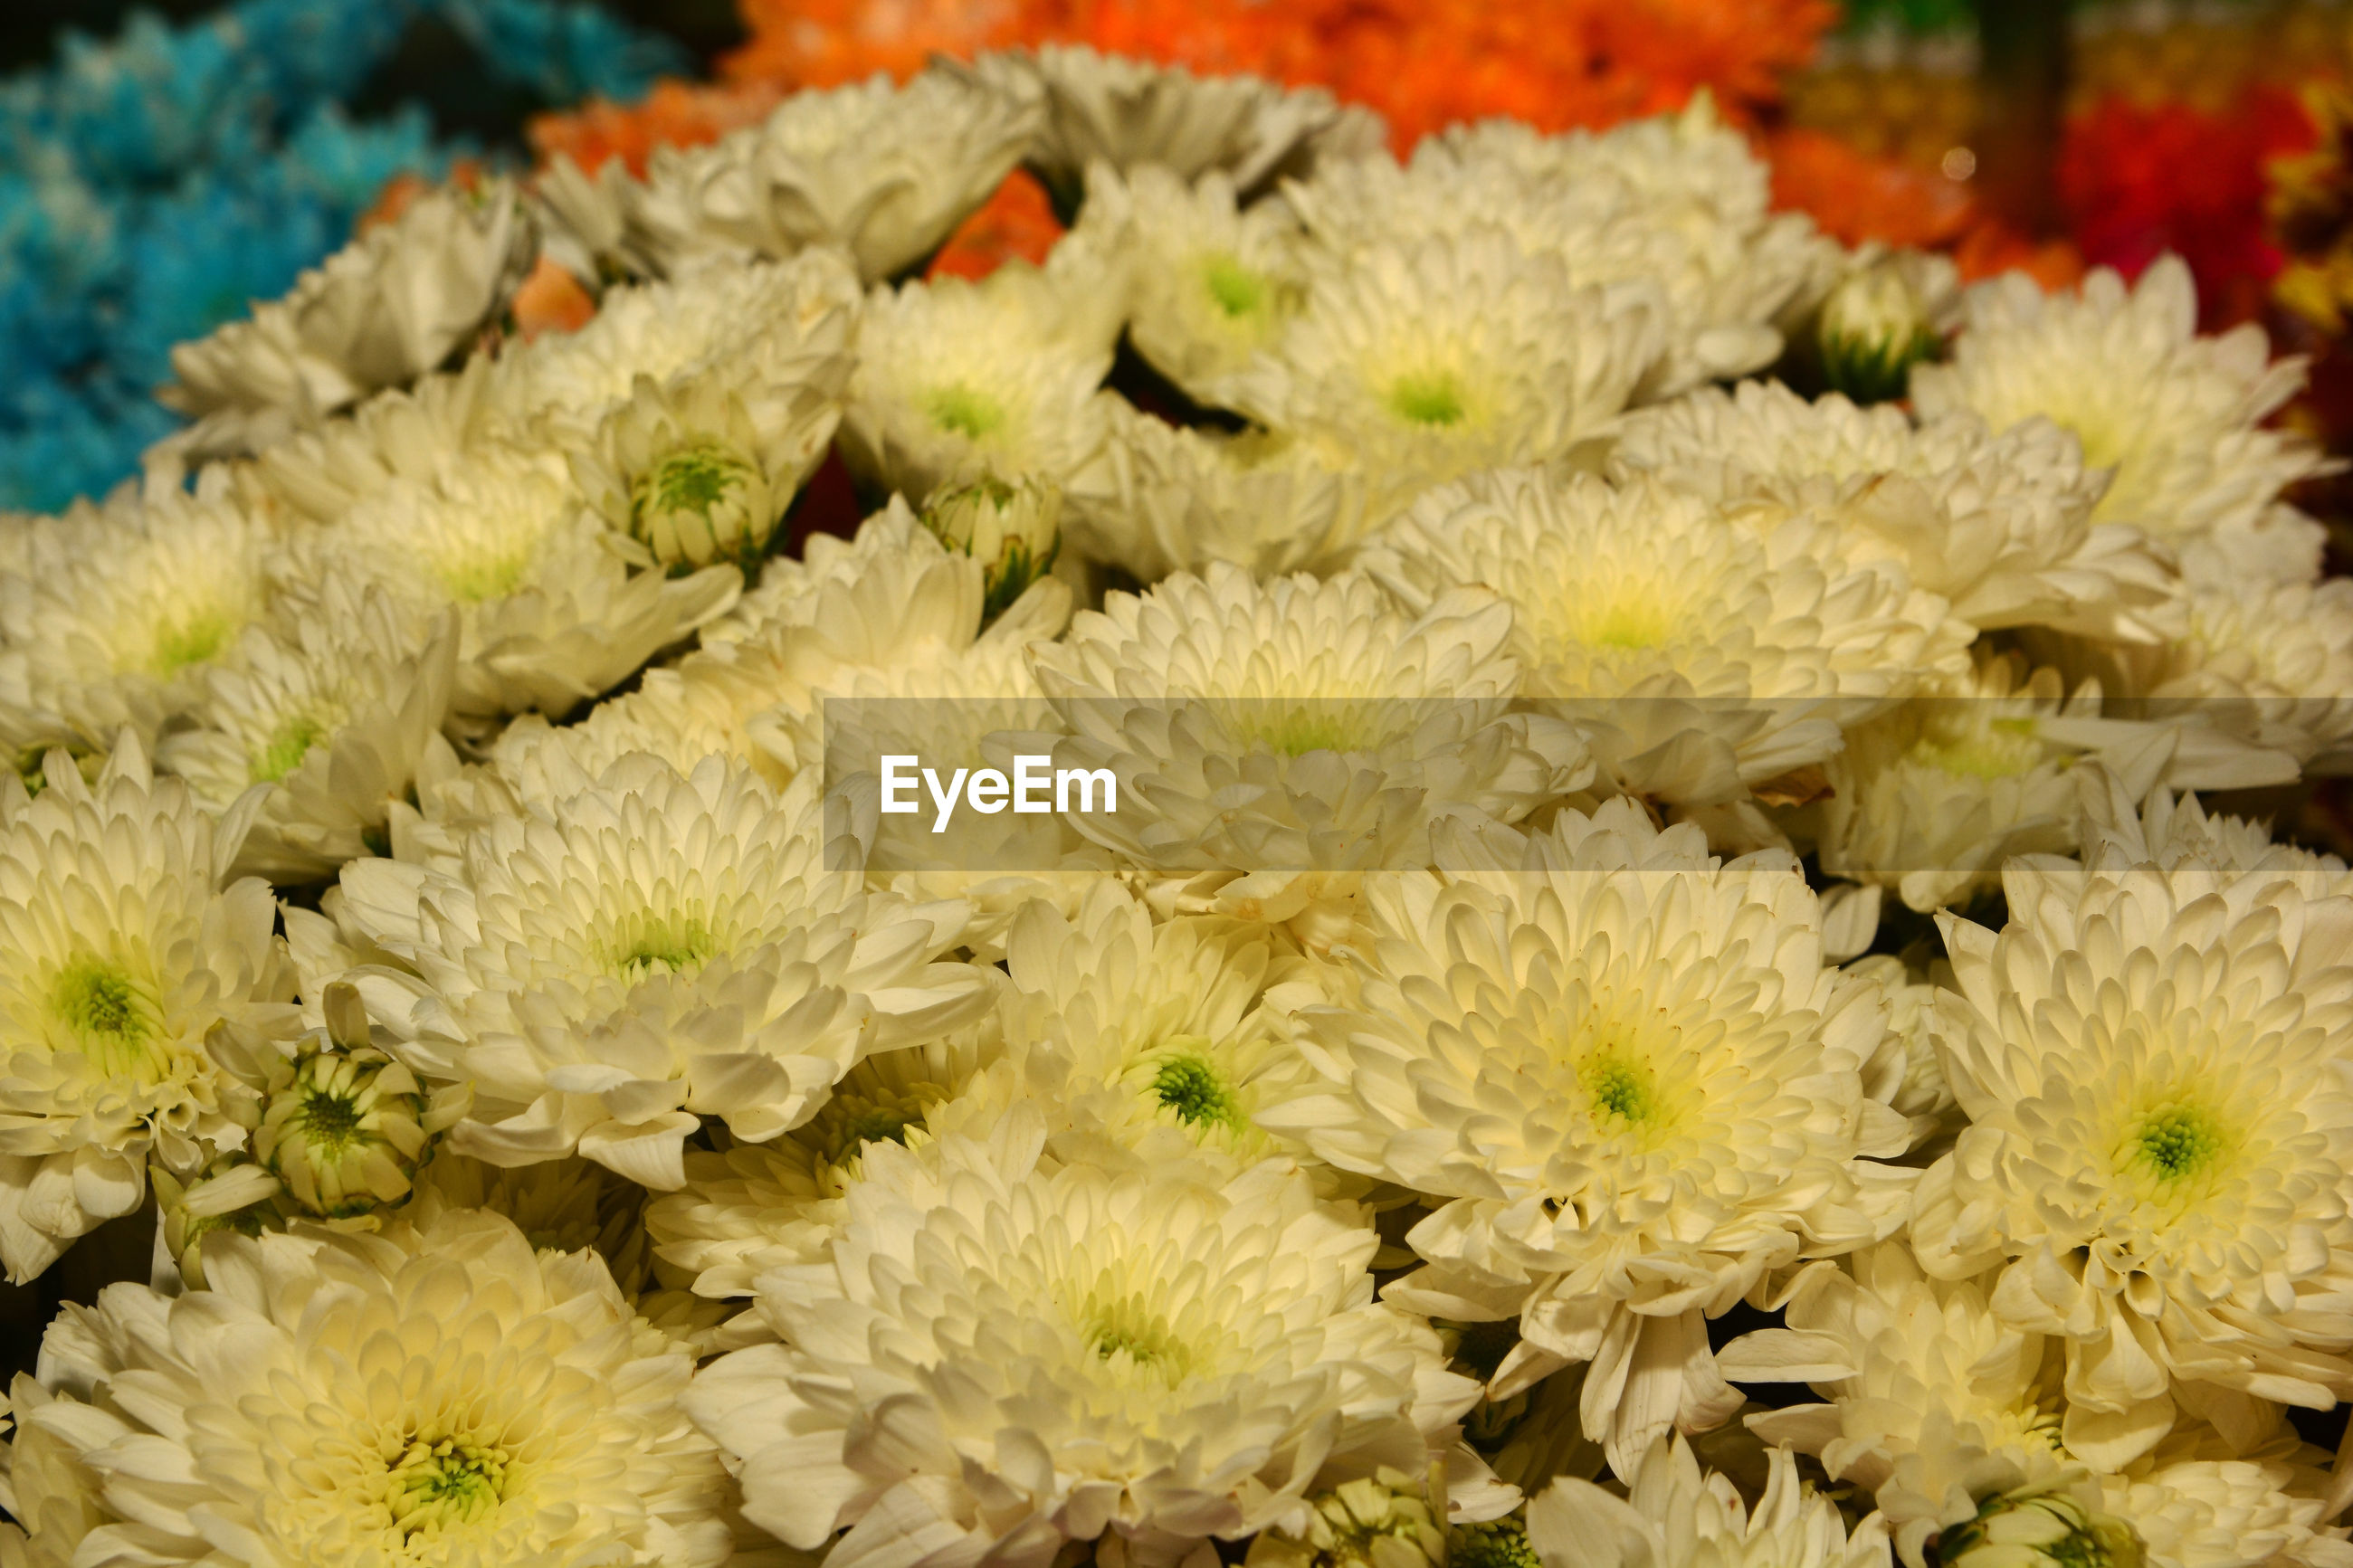 CLOSE-UP OF YELLOW FLOWERING PLANTS FOR SALE